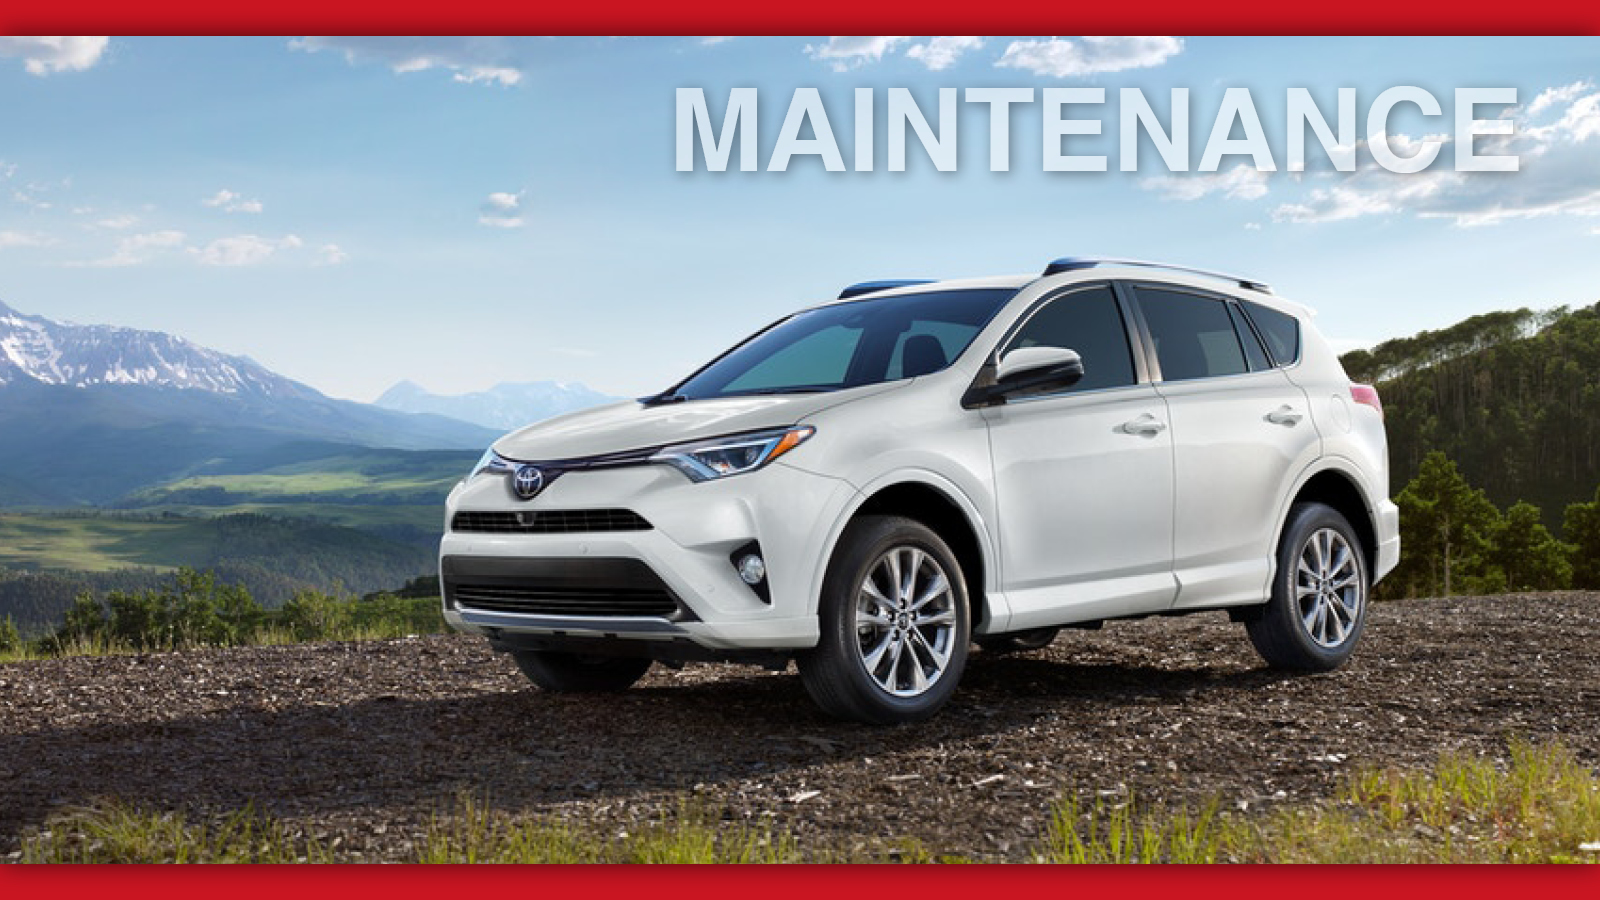 Toyota Rav4 Maintenance Schedule